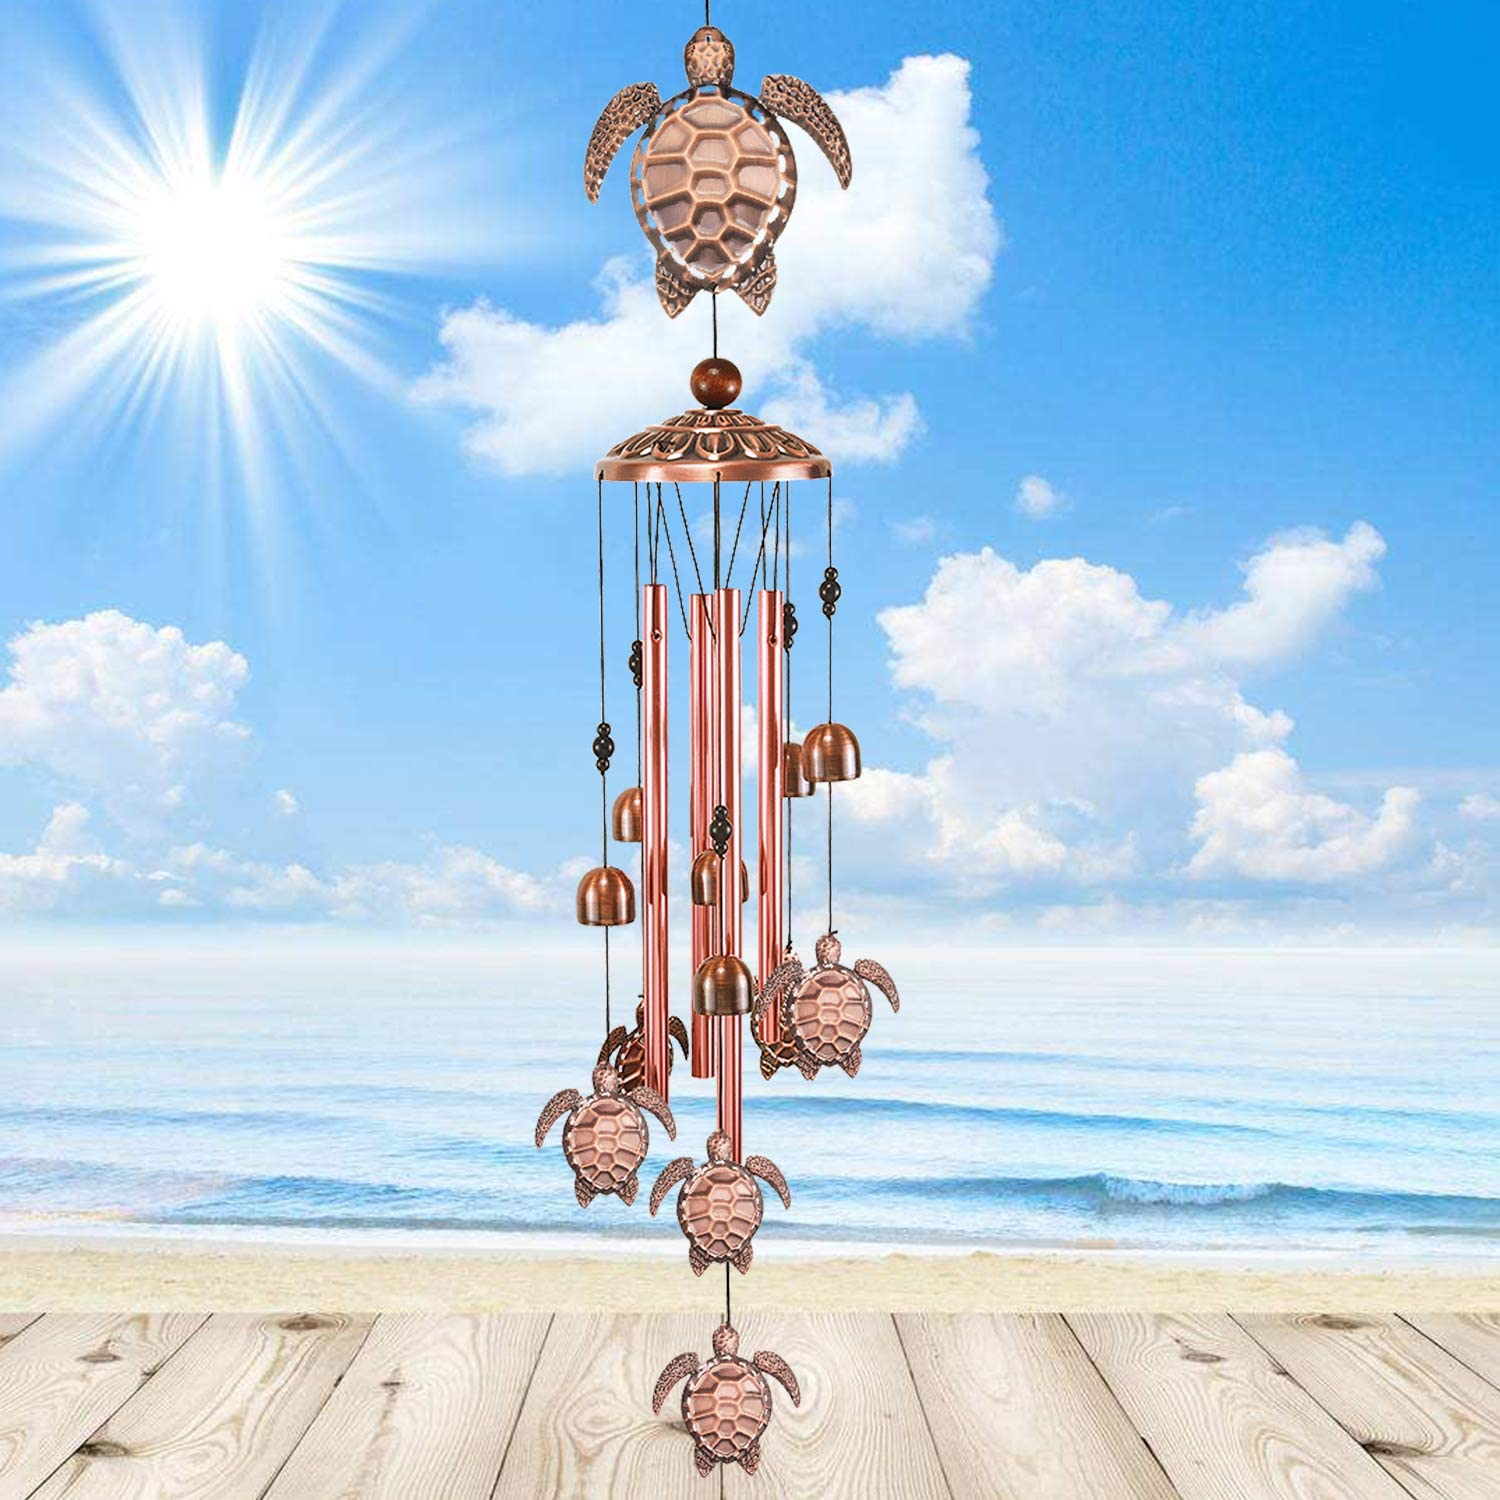 23. Turtle Wind Outdoor Wind Chime